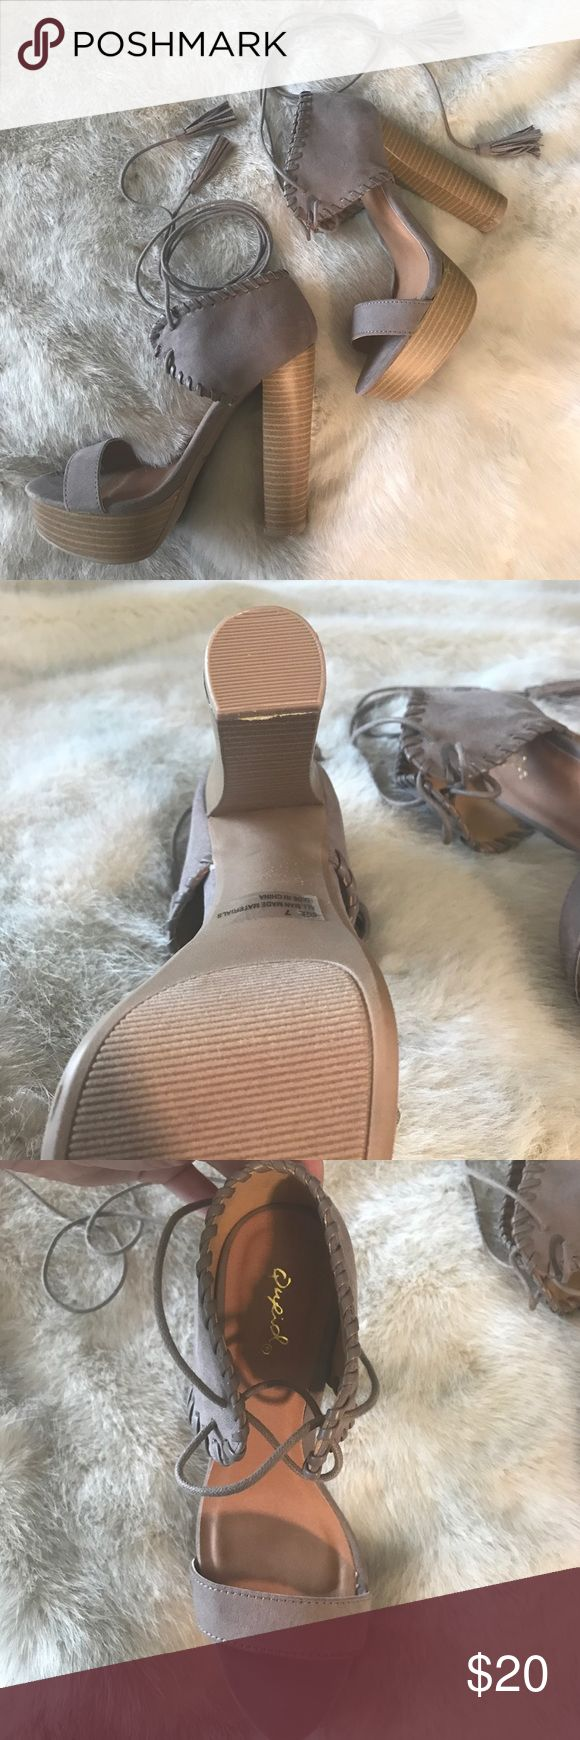 NWOT Platform Ankle Wrap Sandal These shoes are just what you need for the transition into spring! These purple/grey sandals will go with almost anything! Never worn! Nasty Gal Shoes Sandals